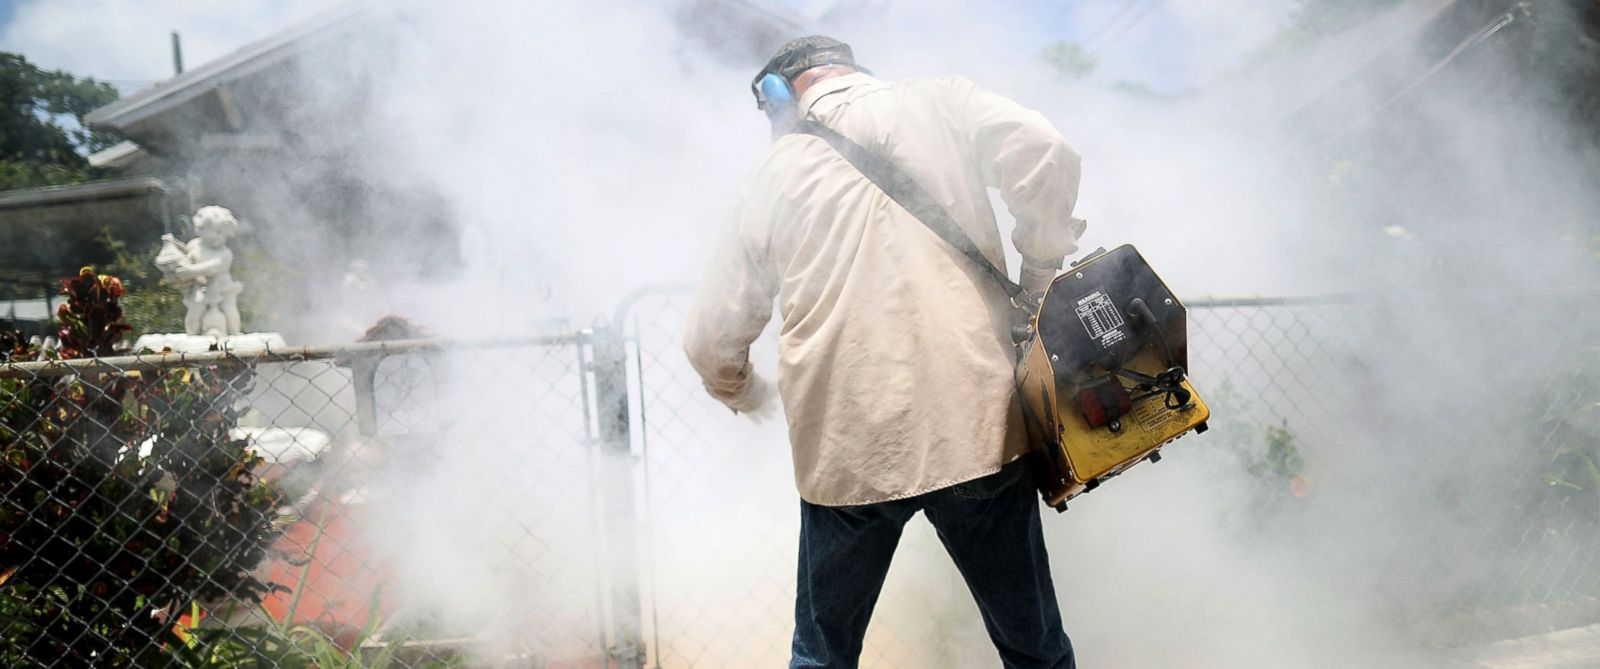 Good Morning America Zika Virus : Why zika virus is unlikely to become endemic in the